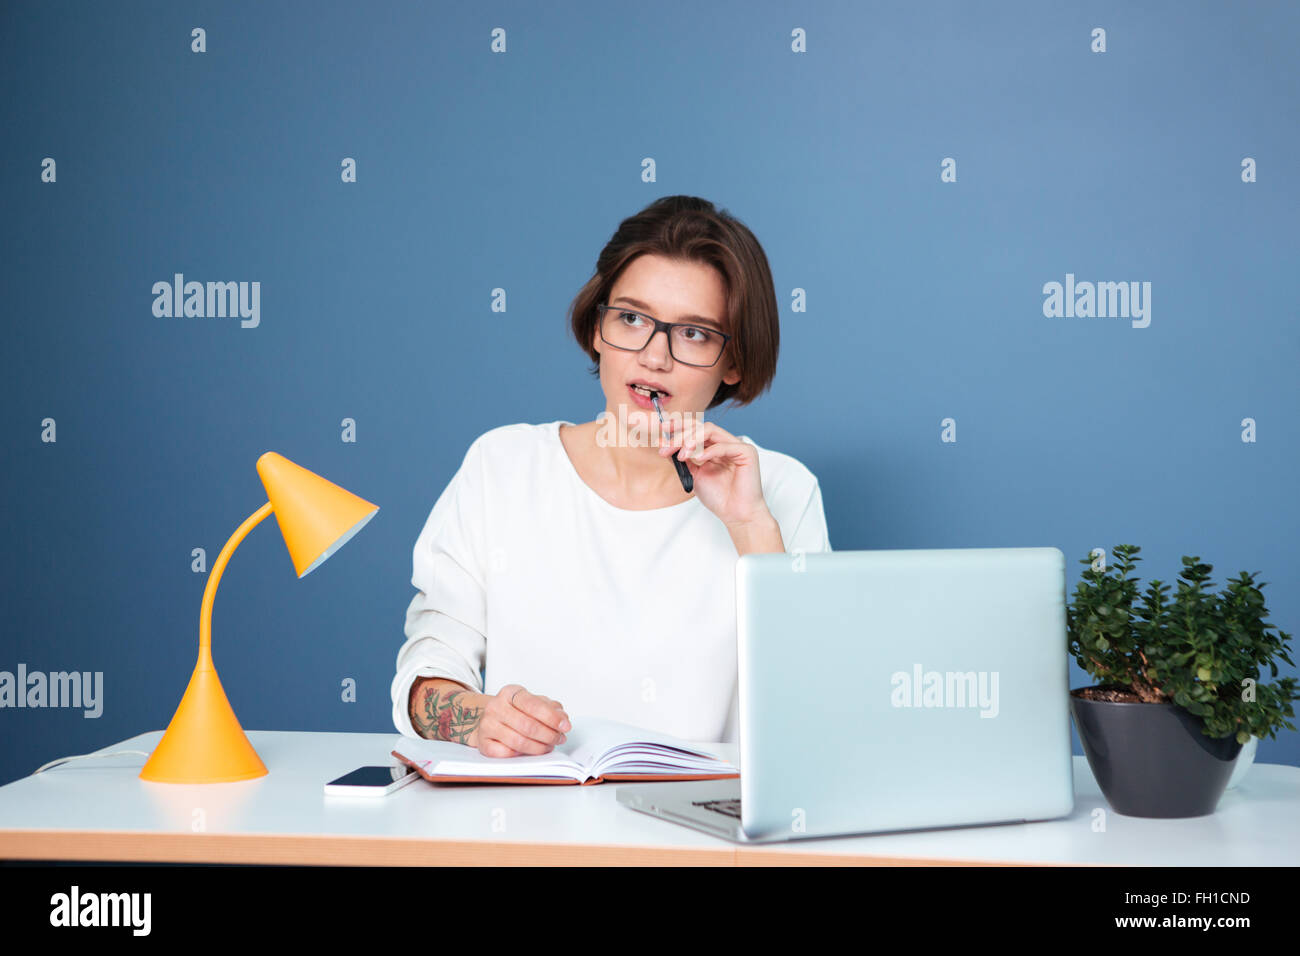 Workplace Computer Table Lamp Plant Stock Photos & Workplace ...